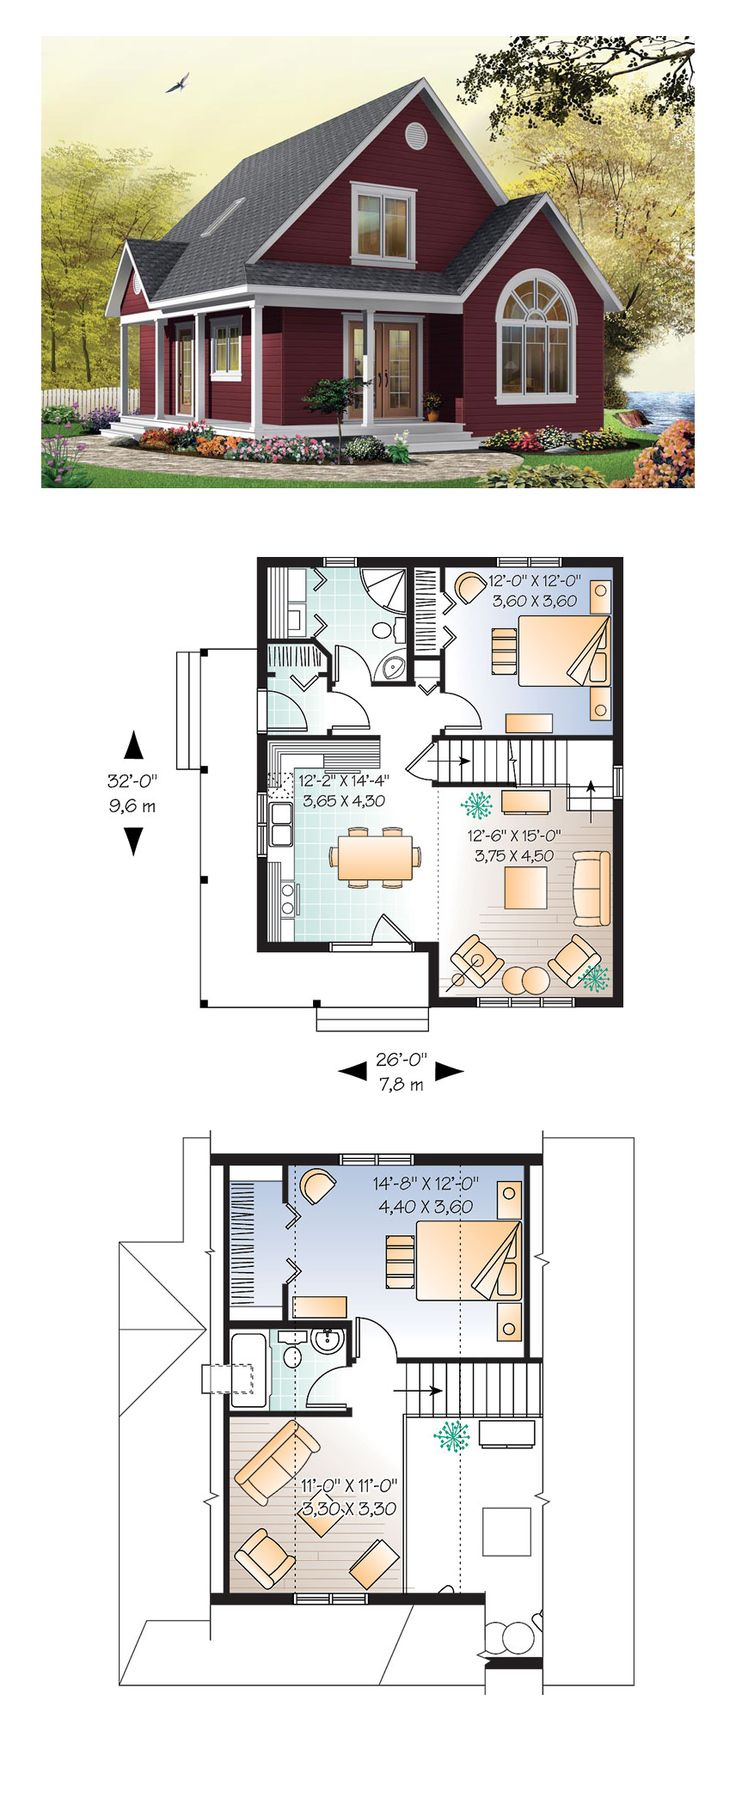 Sensational 17 Best Ideas About Tiny House Plans On Pinterest Small House Inspirational Interior Design Netriciaus